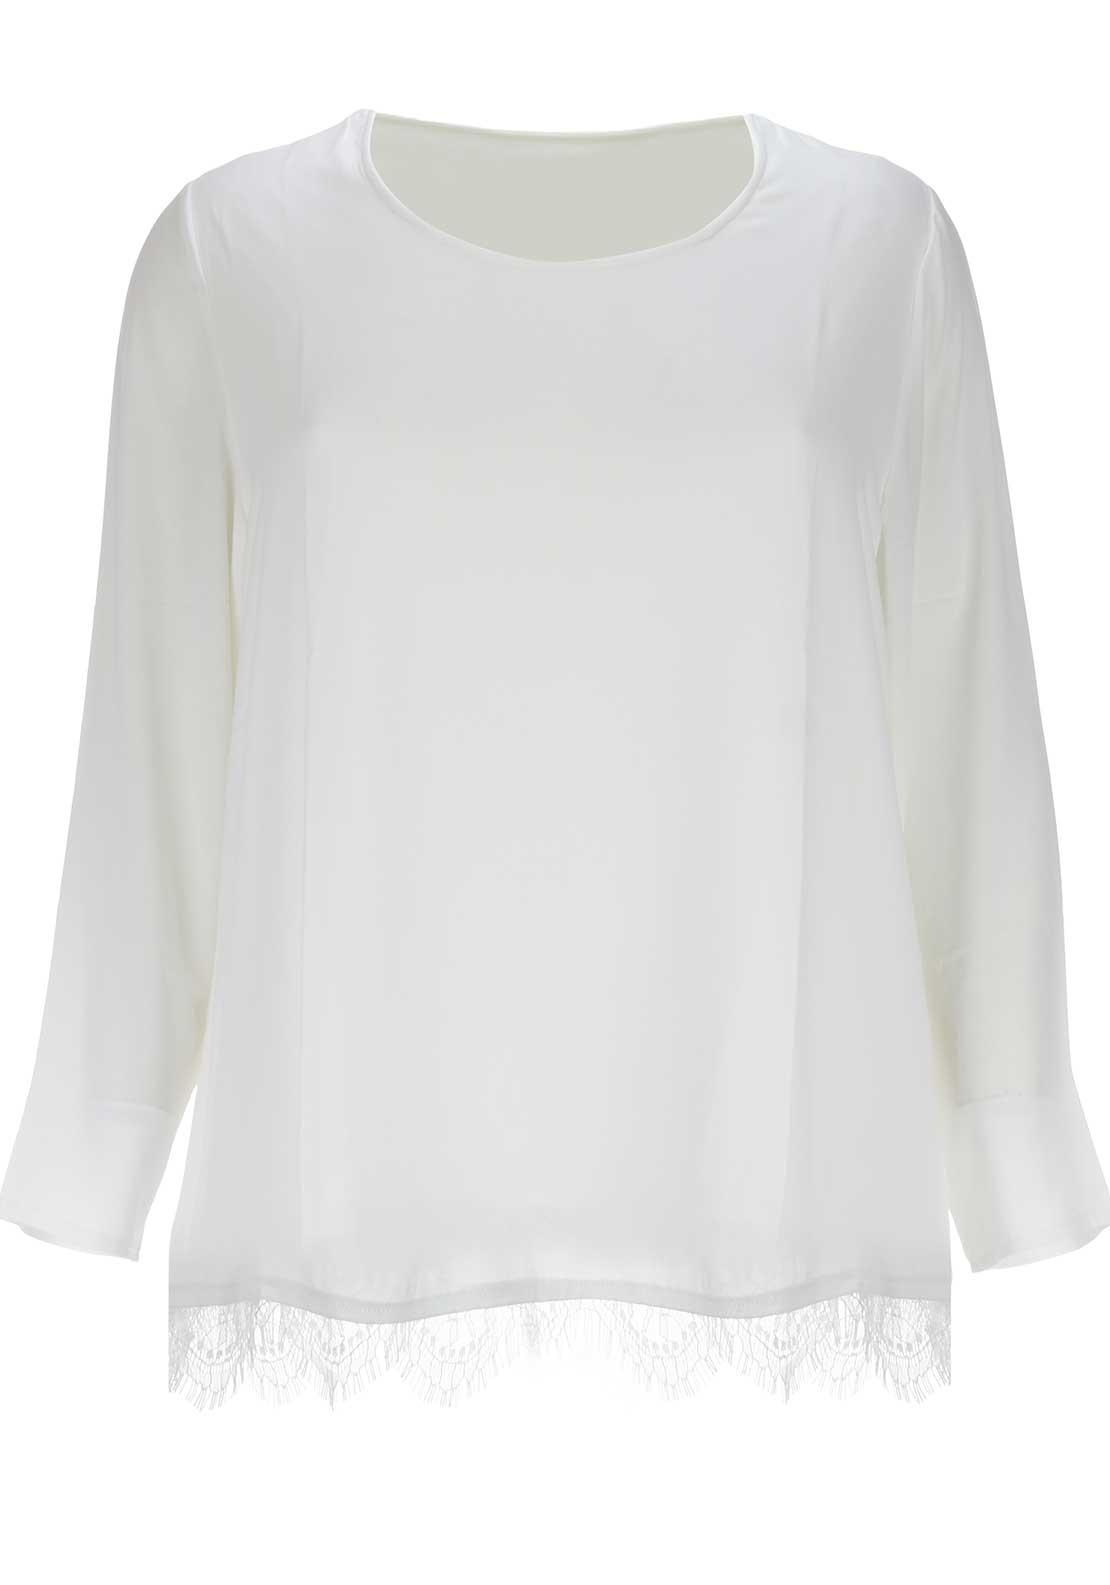 Samoon Lace Trim Top, White